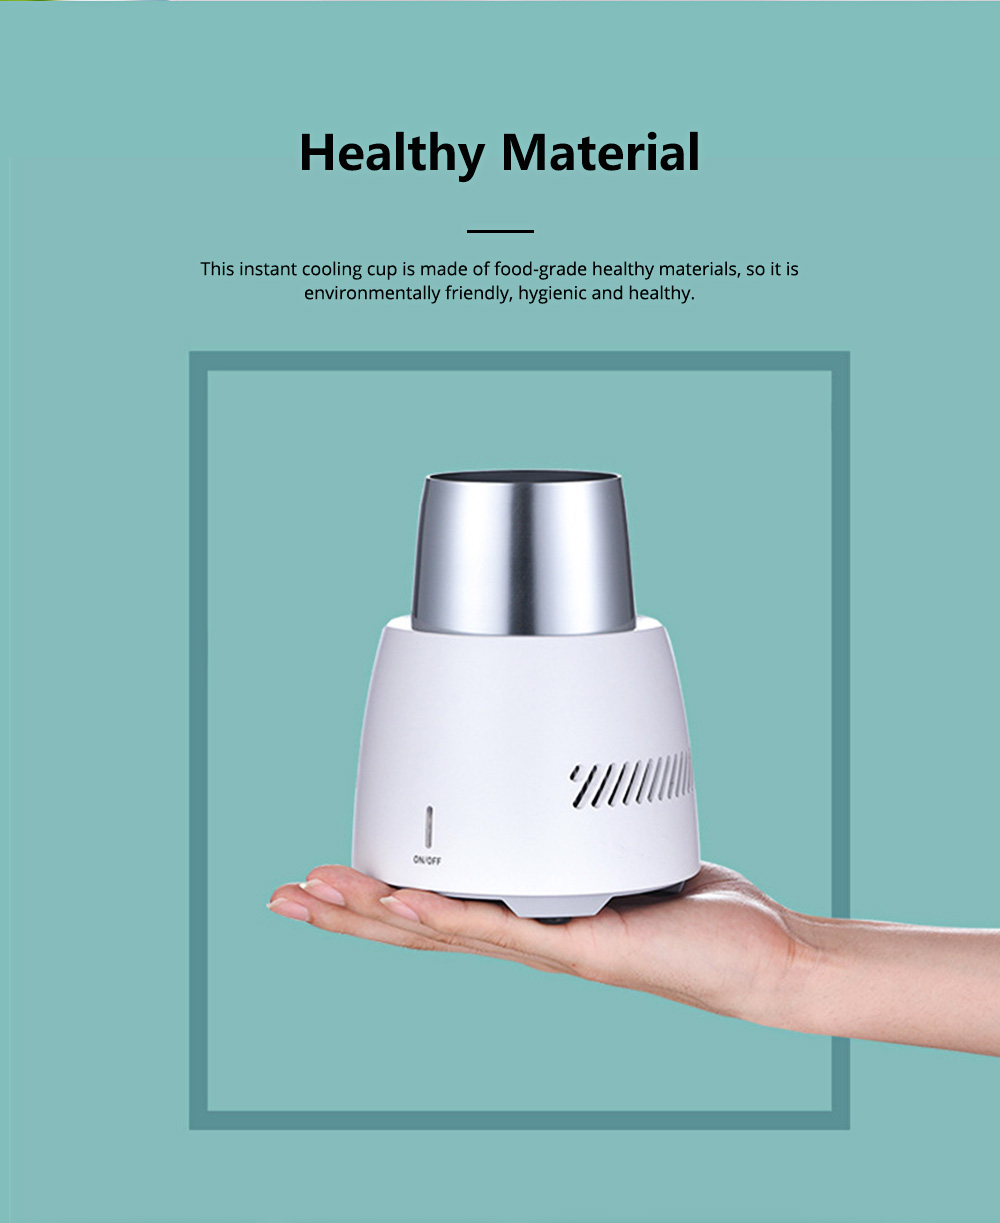 Quick Refrigeration Cup Small Household Desktop Cooler Home Appliances Water Bottle Instant Cooling Cup Instant Ice Cup 3